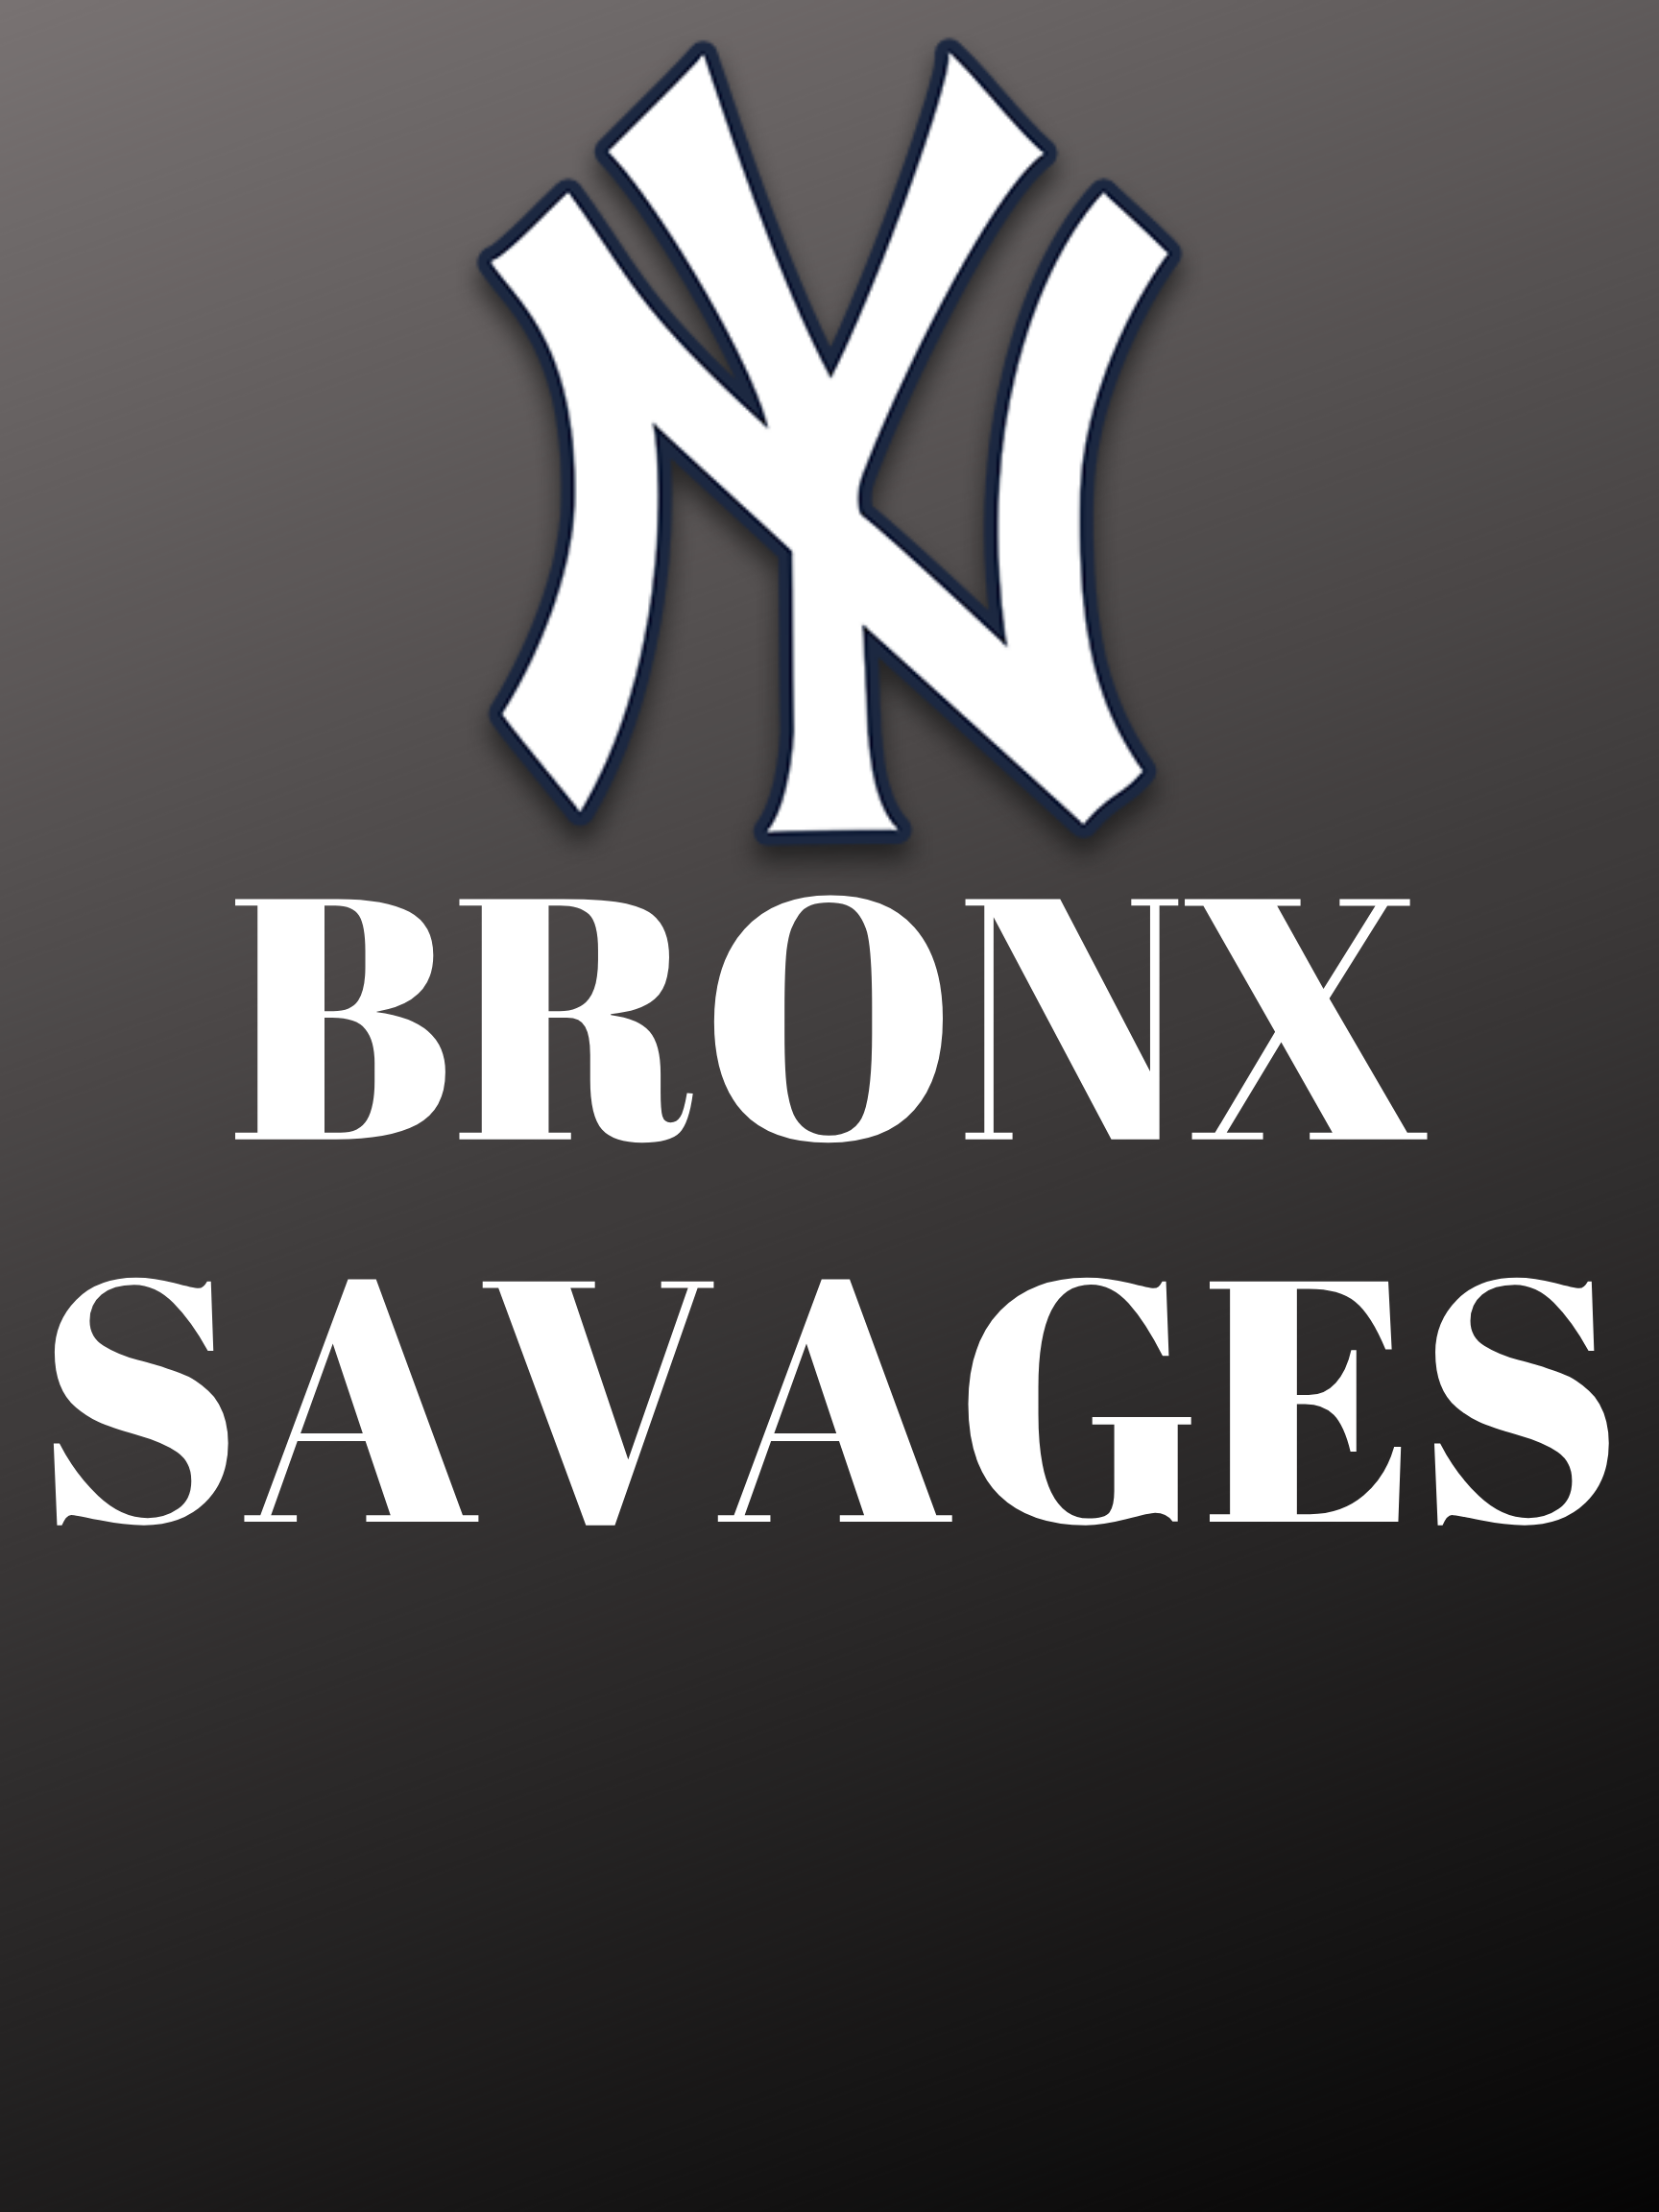 New York Yankees Bronx Savages T Shirt Wear These Shirts With Pride And Support The Greatest Franchise In Sports New York Yankees Logo New York Yankees Yankees